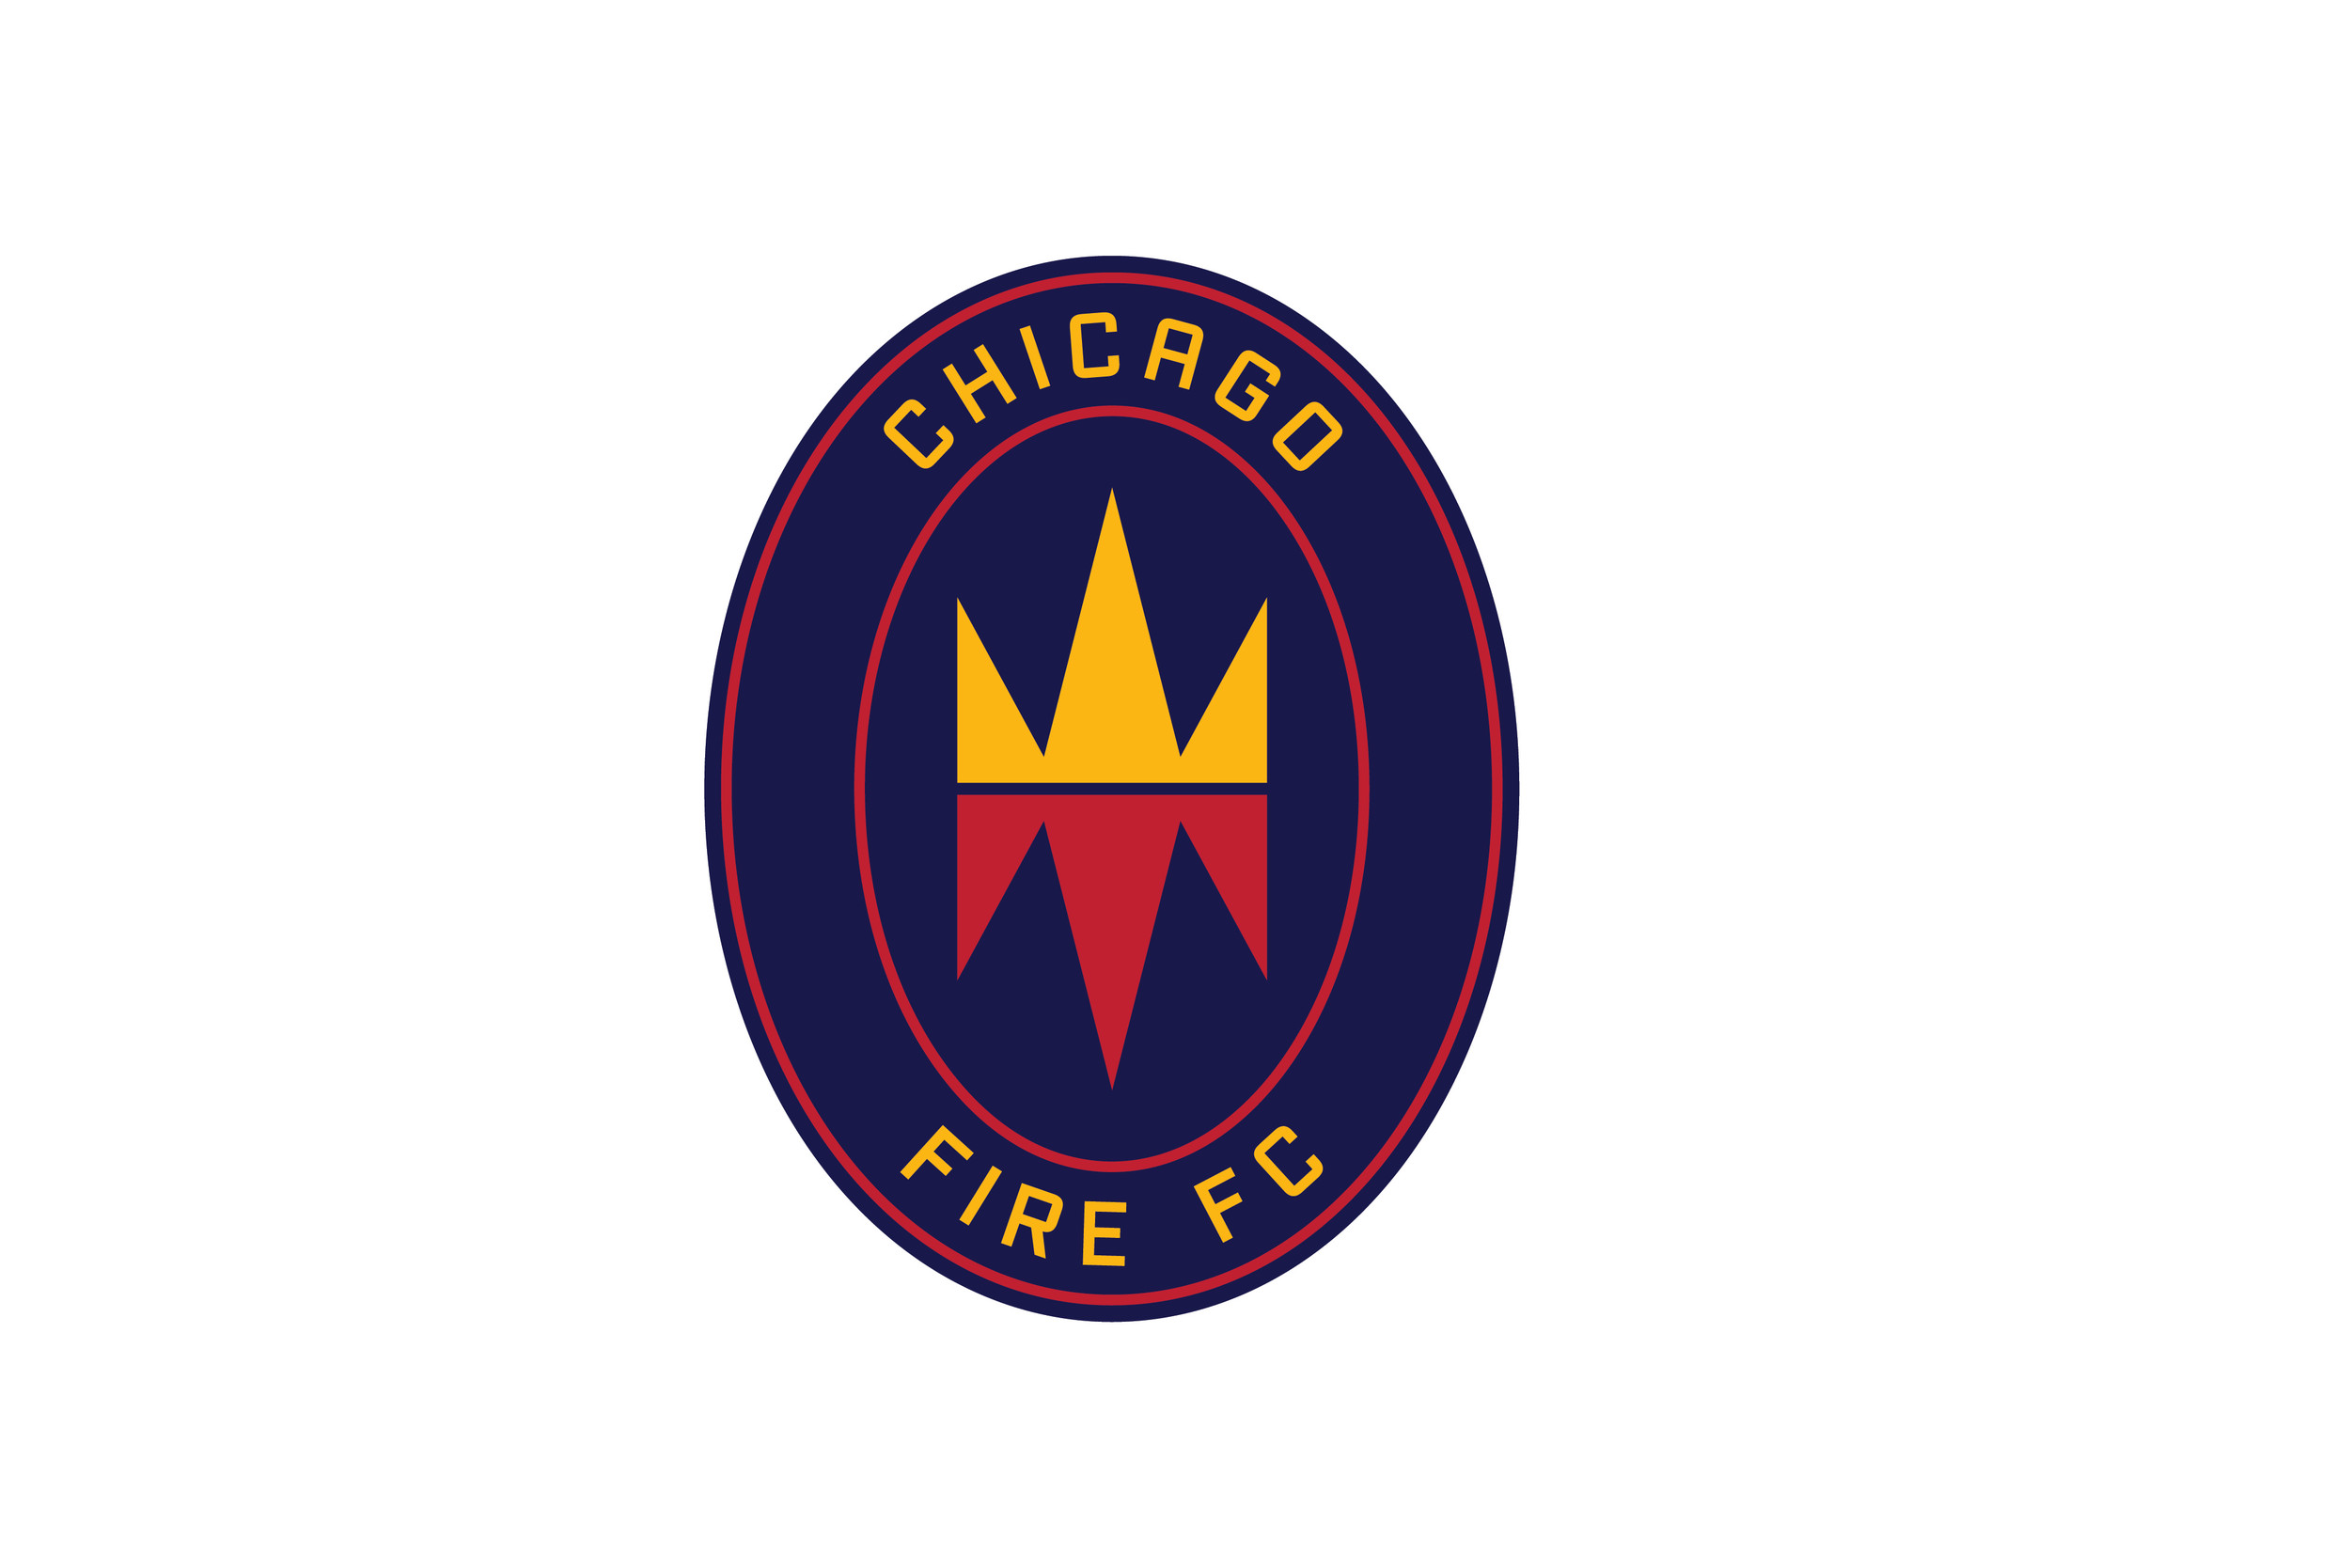 The Fire will have a new logo for the 2022 season, and the badge released in 2019 (above) will be worn in 2021 then retired.